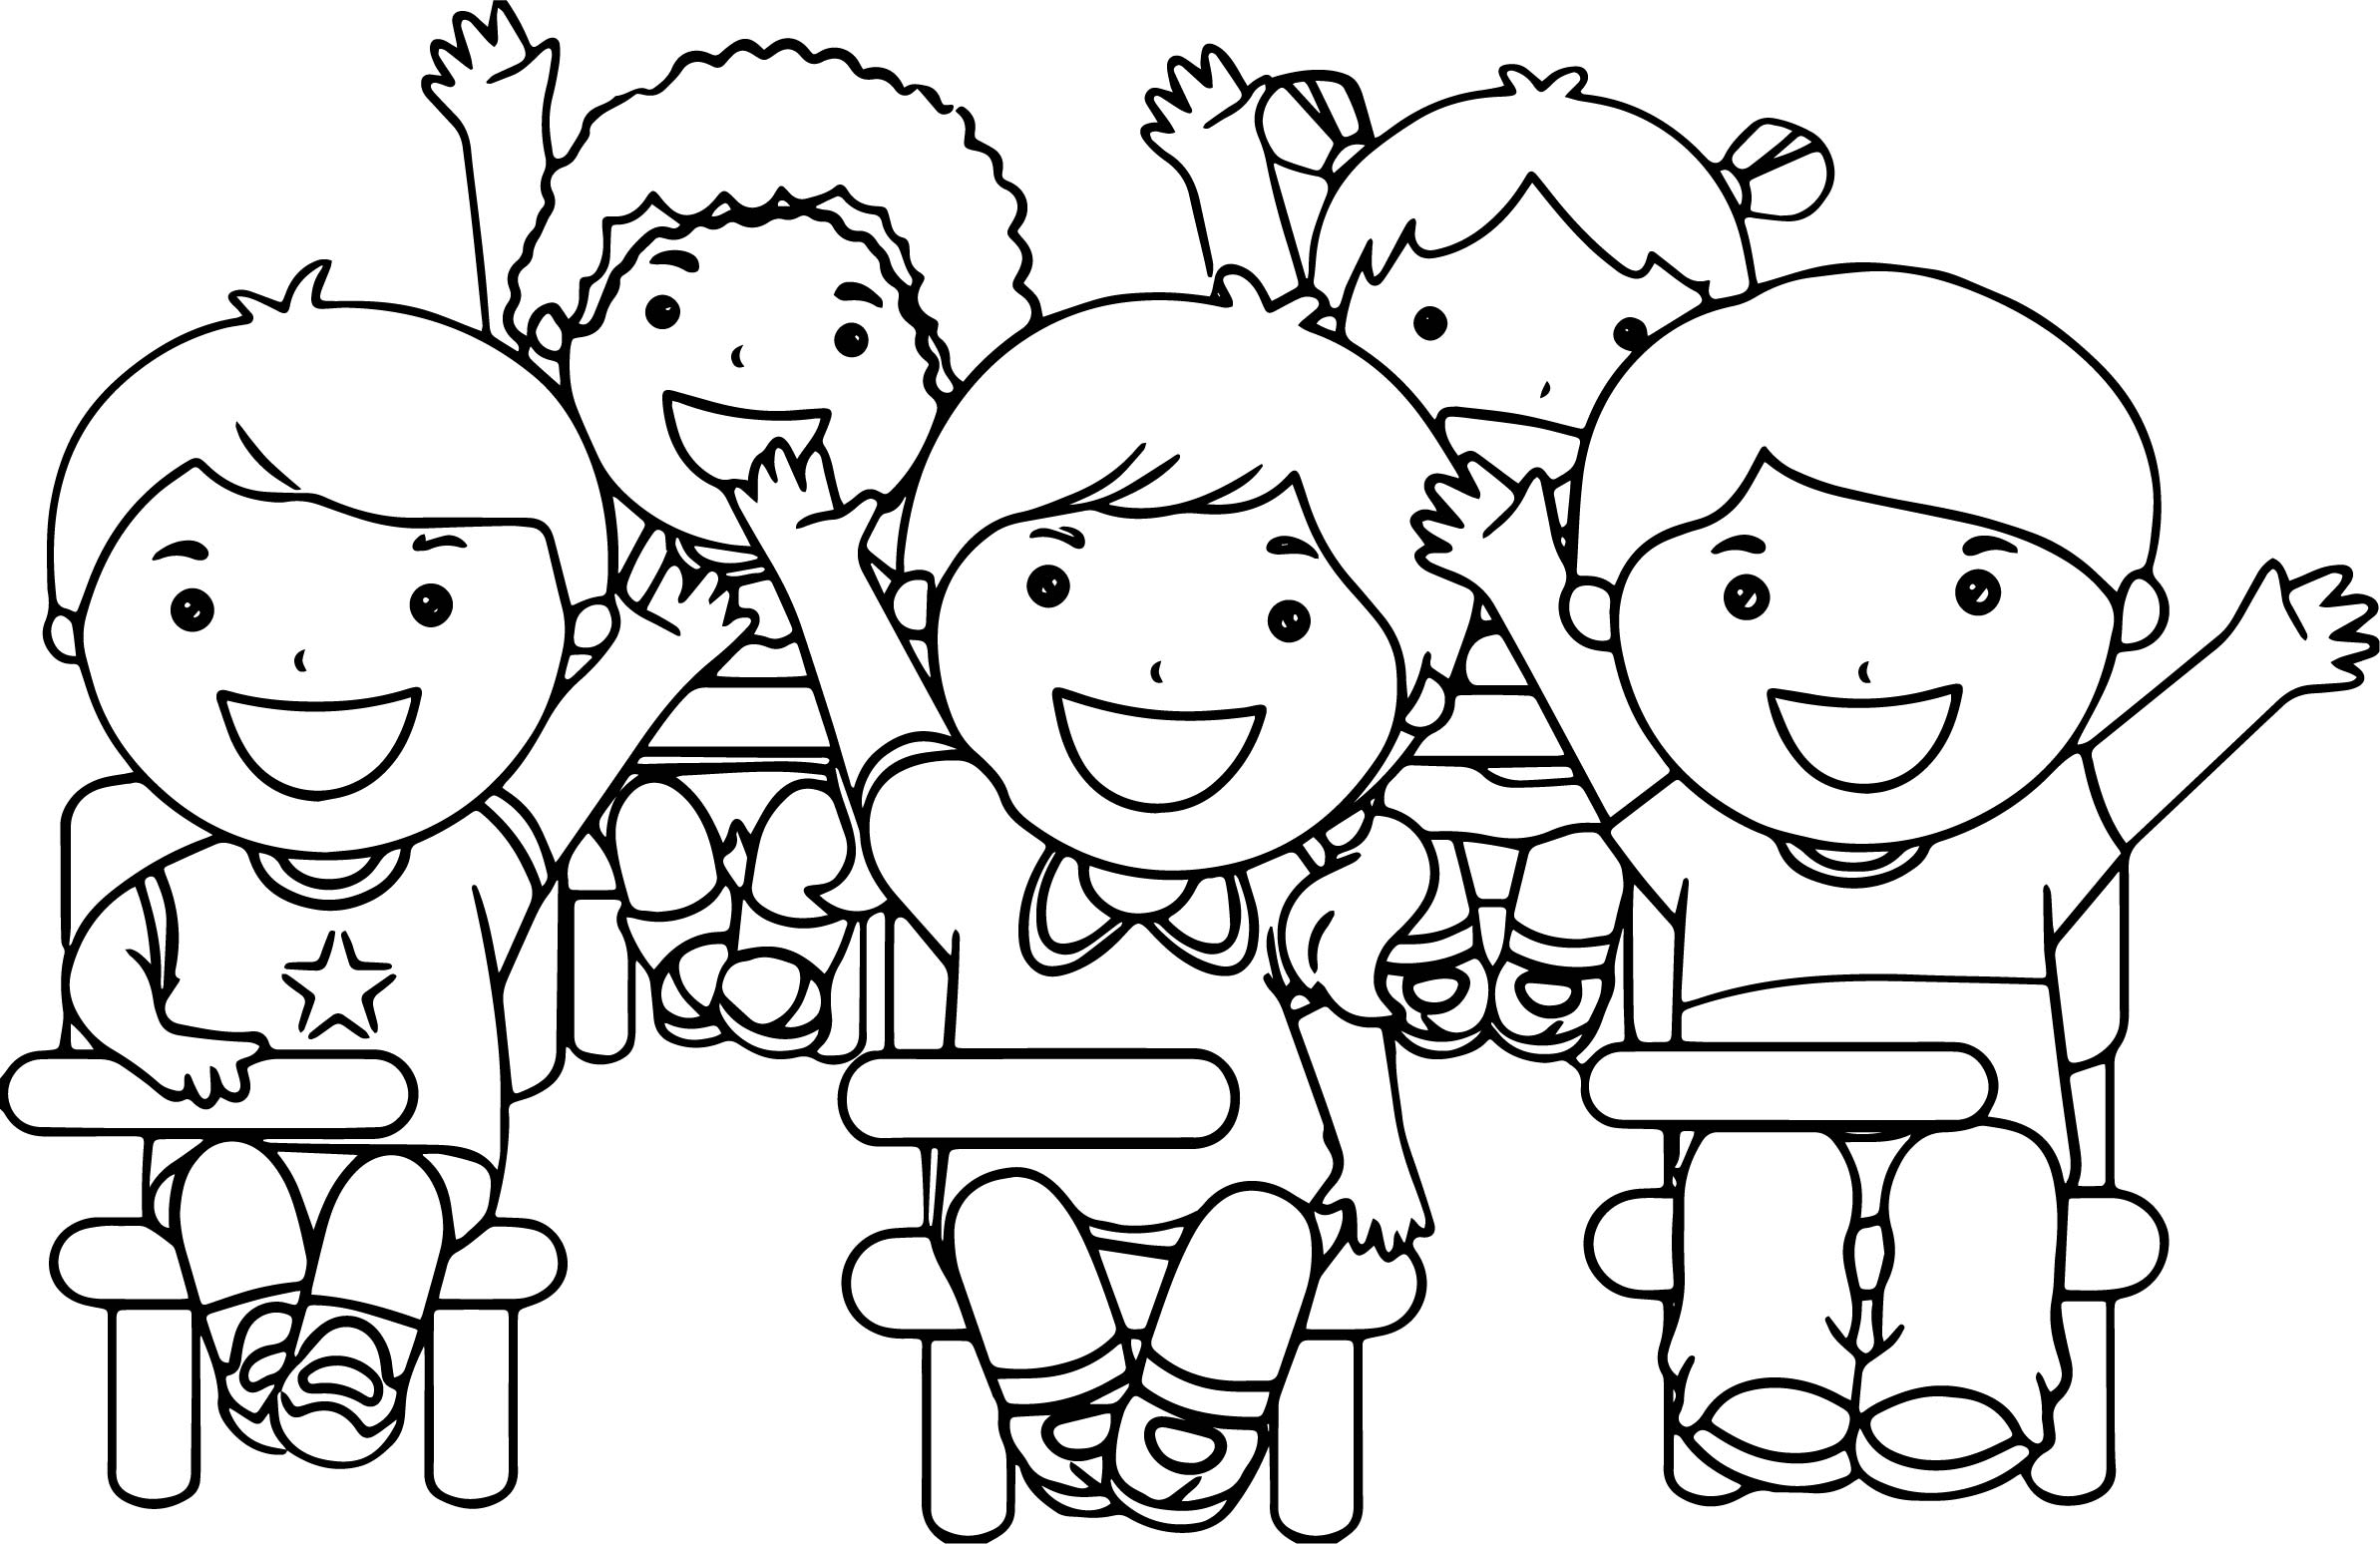 At The School Children Coloring Page